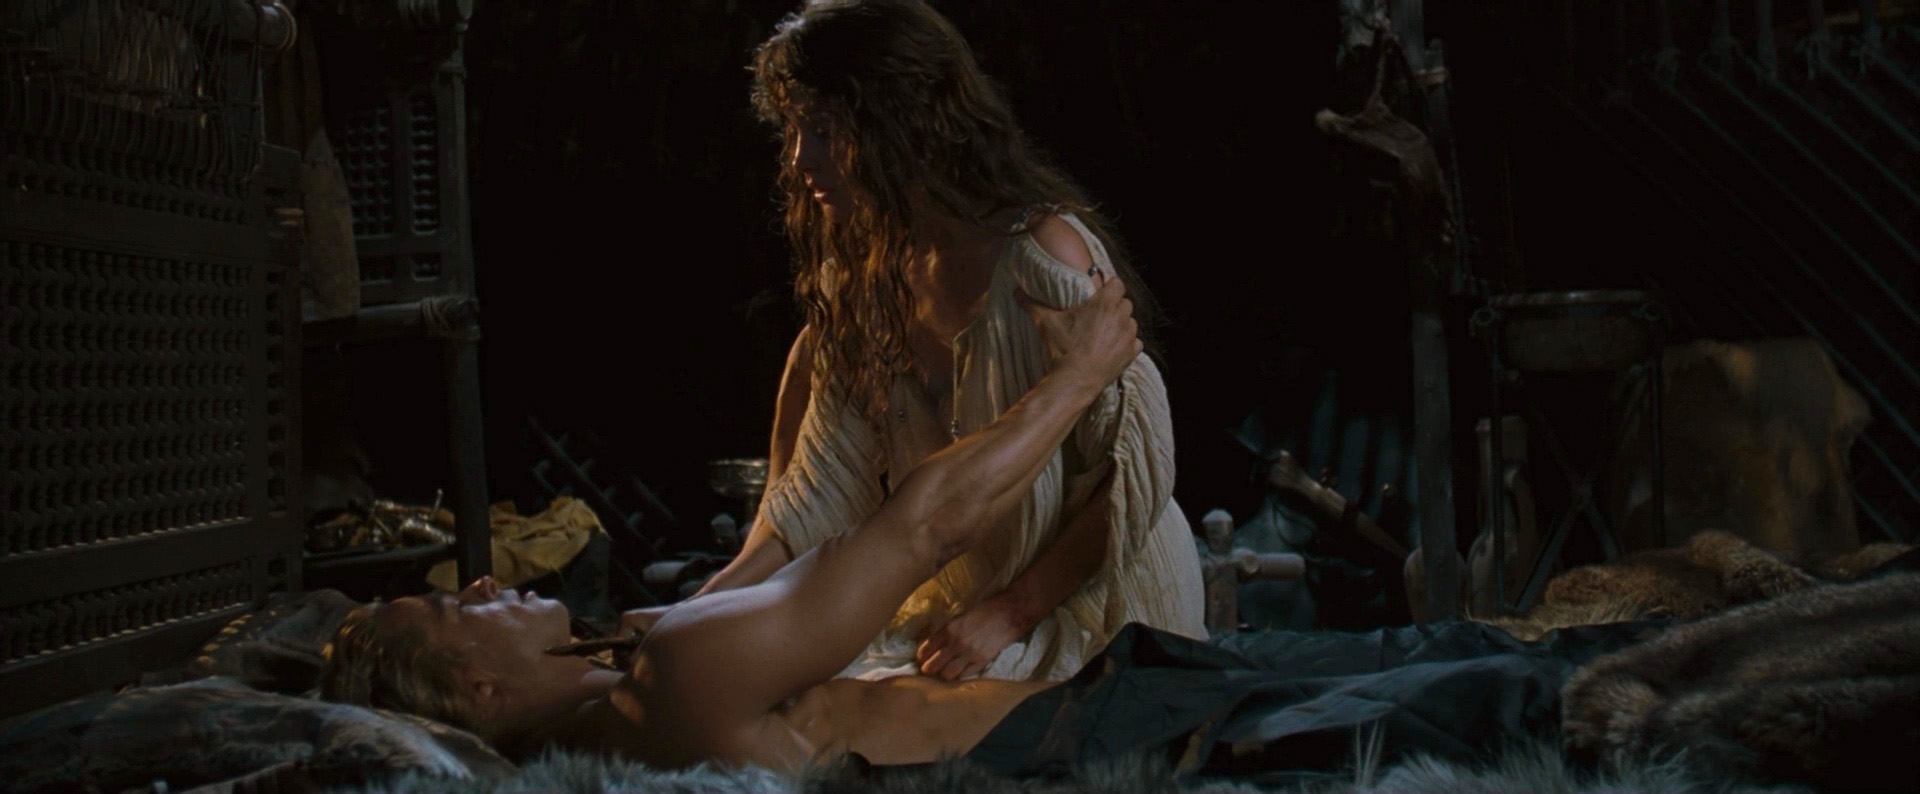 Rose byrne naked in movies